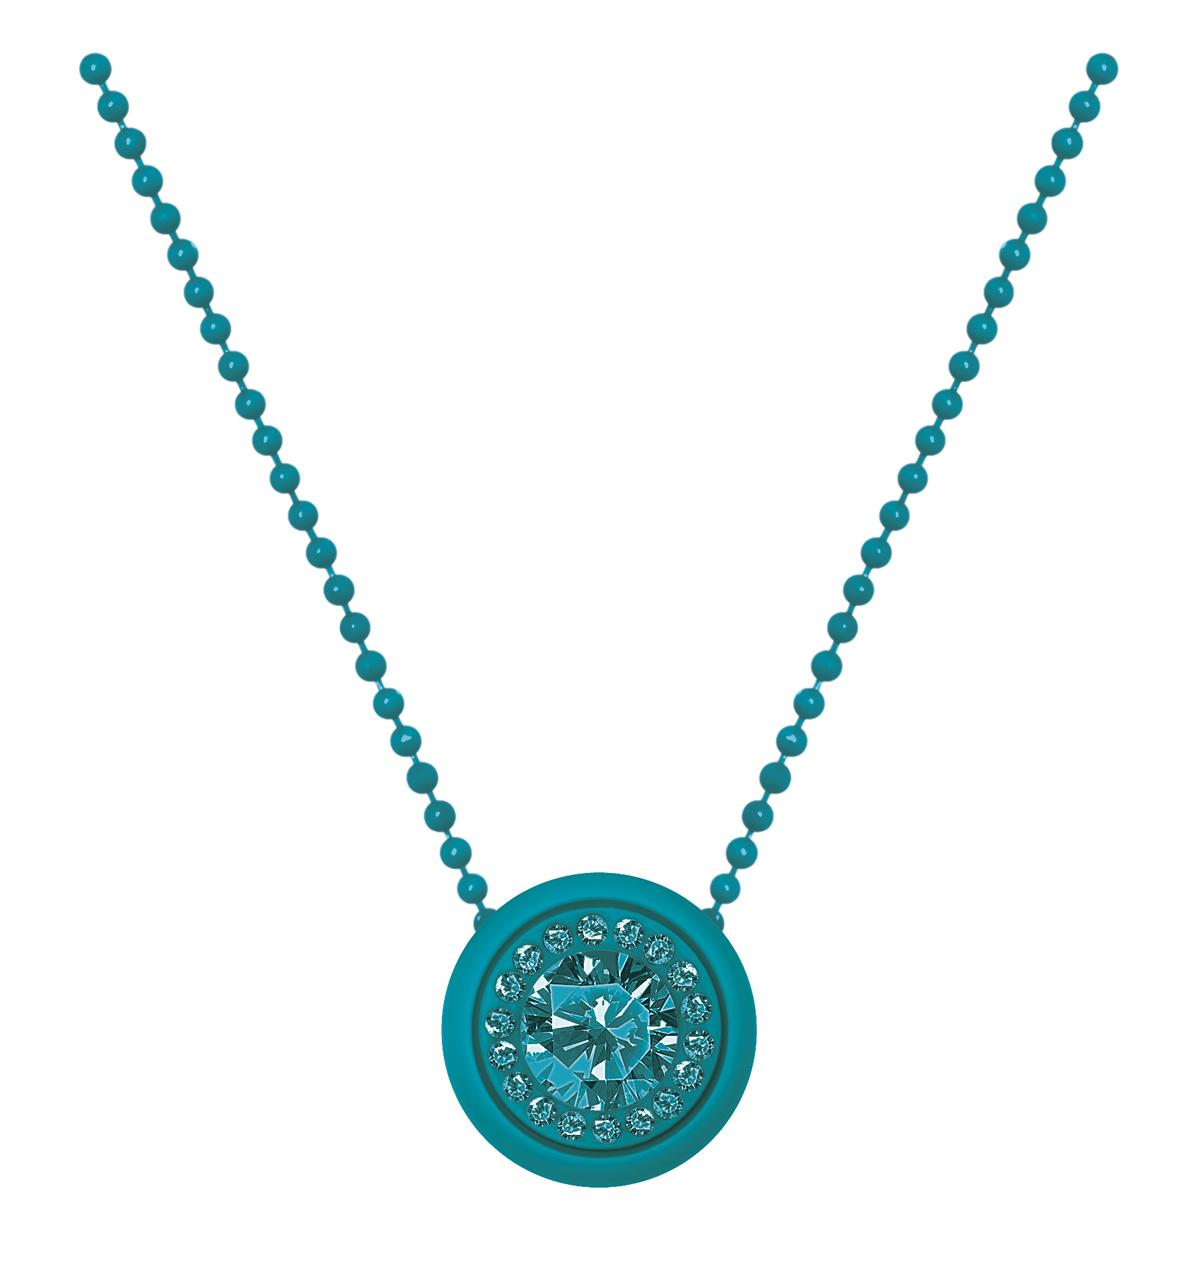 Collana ops gem-turchese-Clessidra Jewels